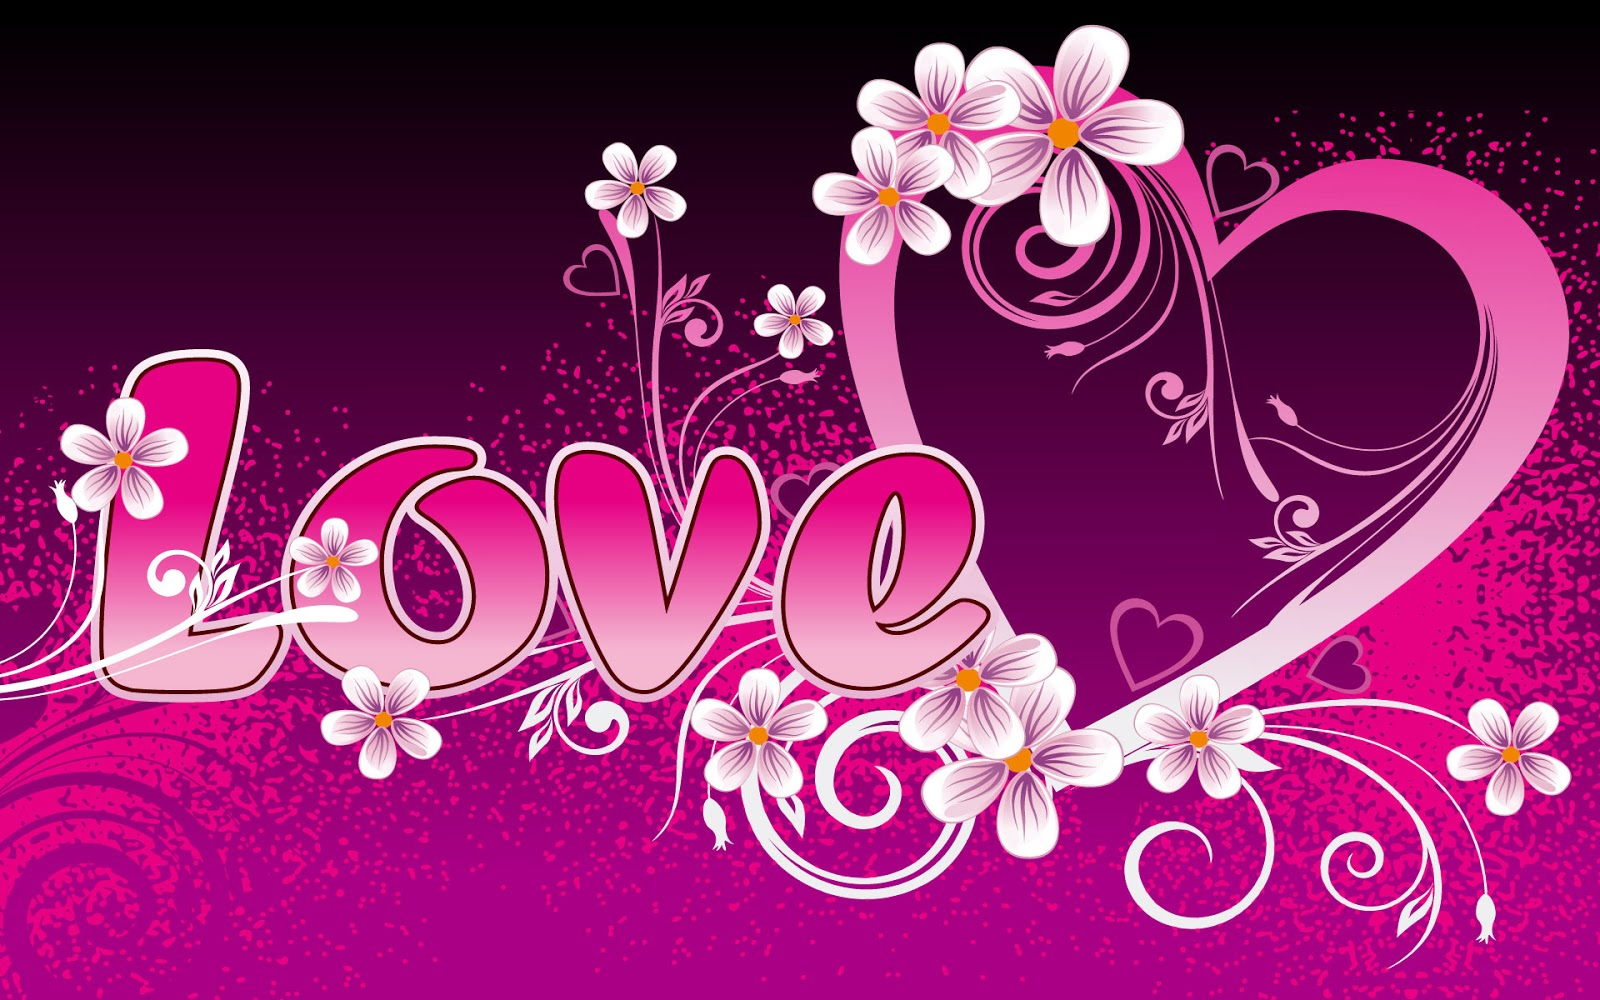 sweet love wallpapers - sweet love images